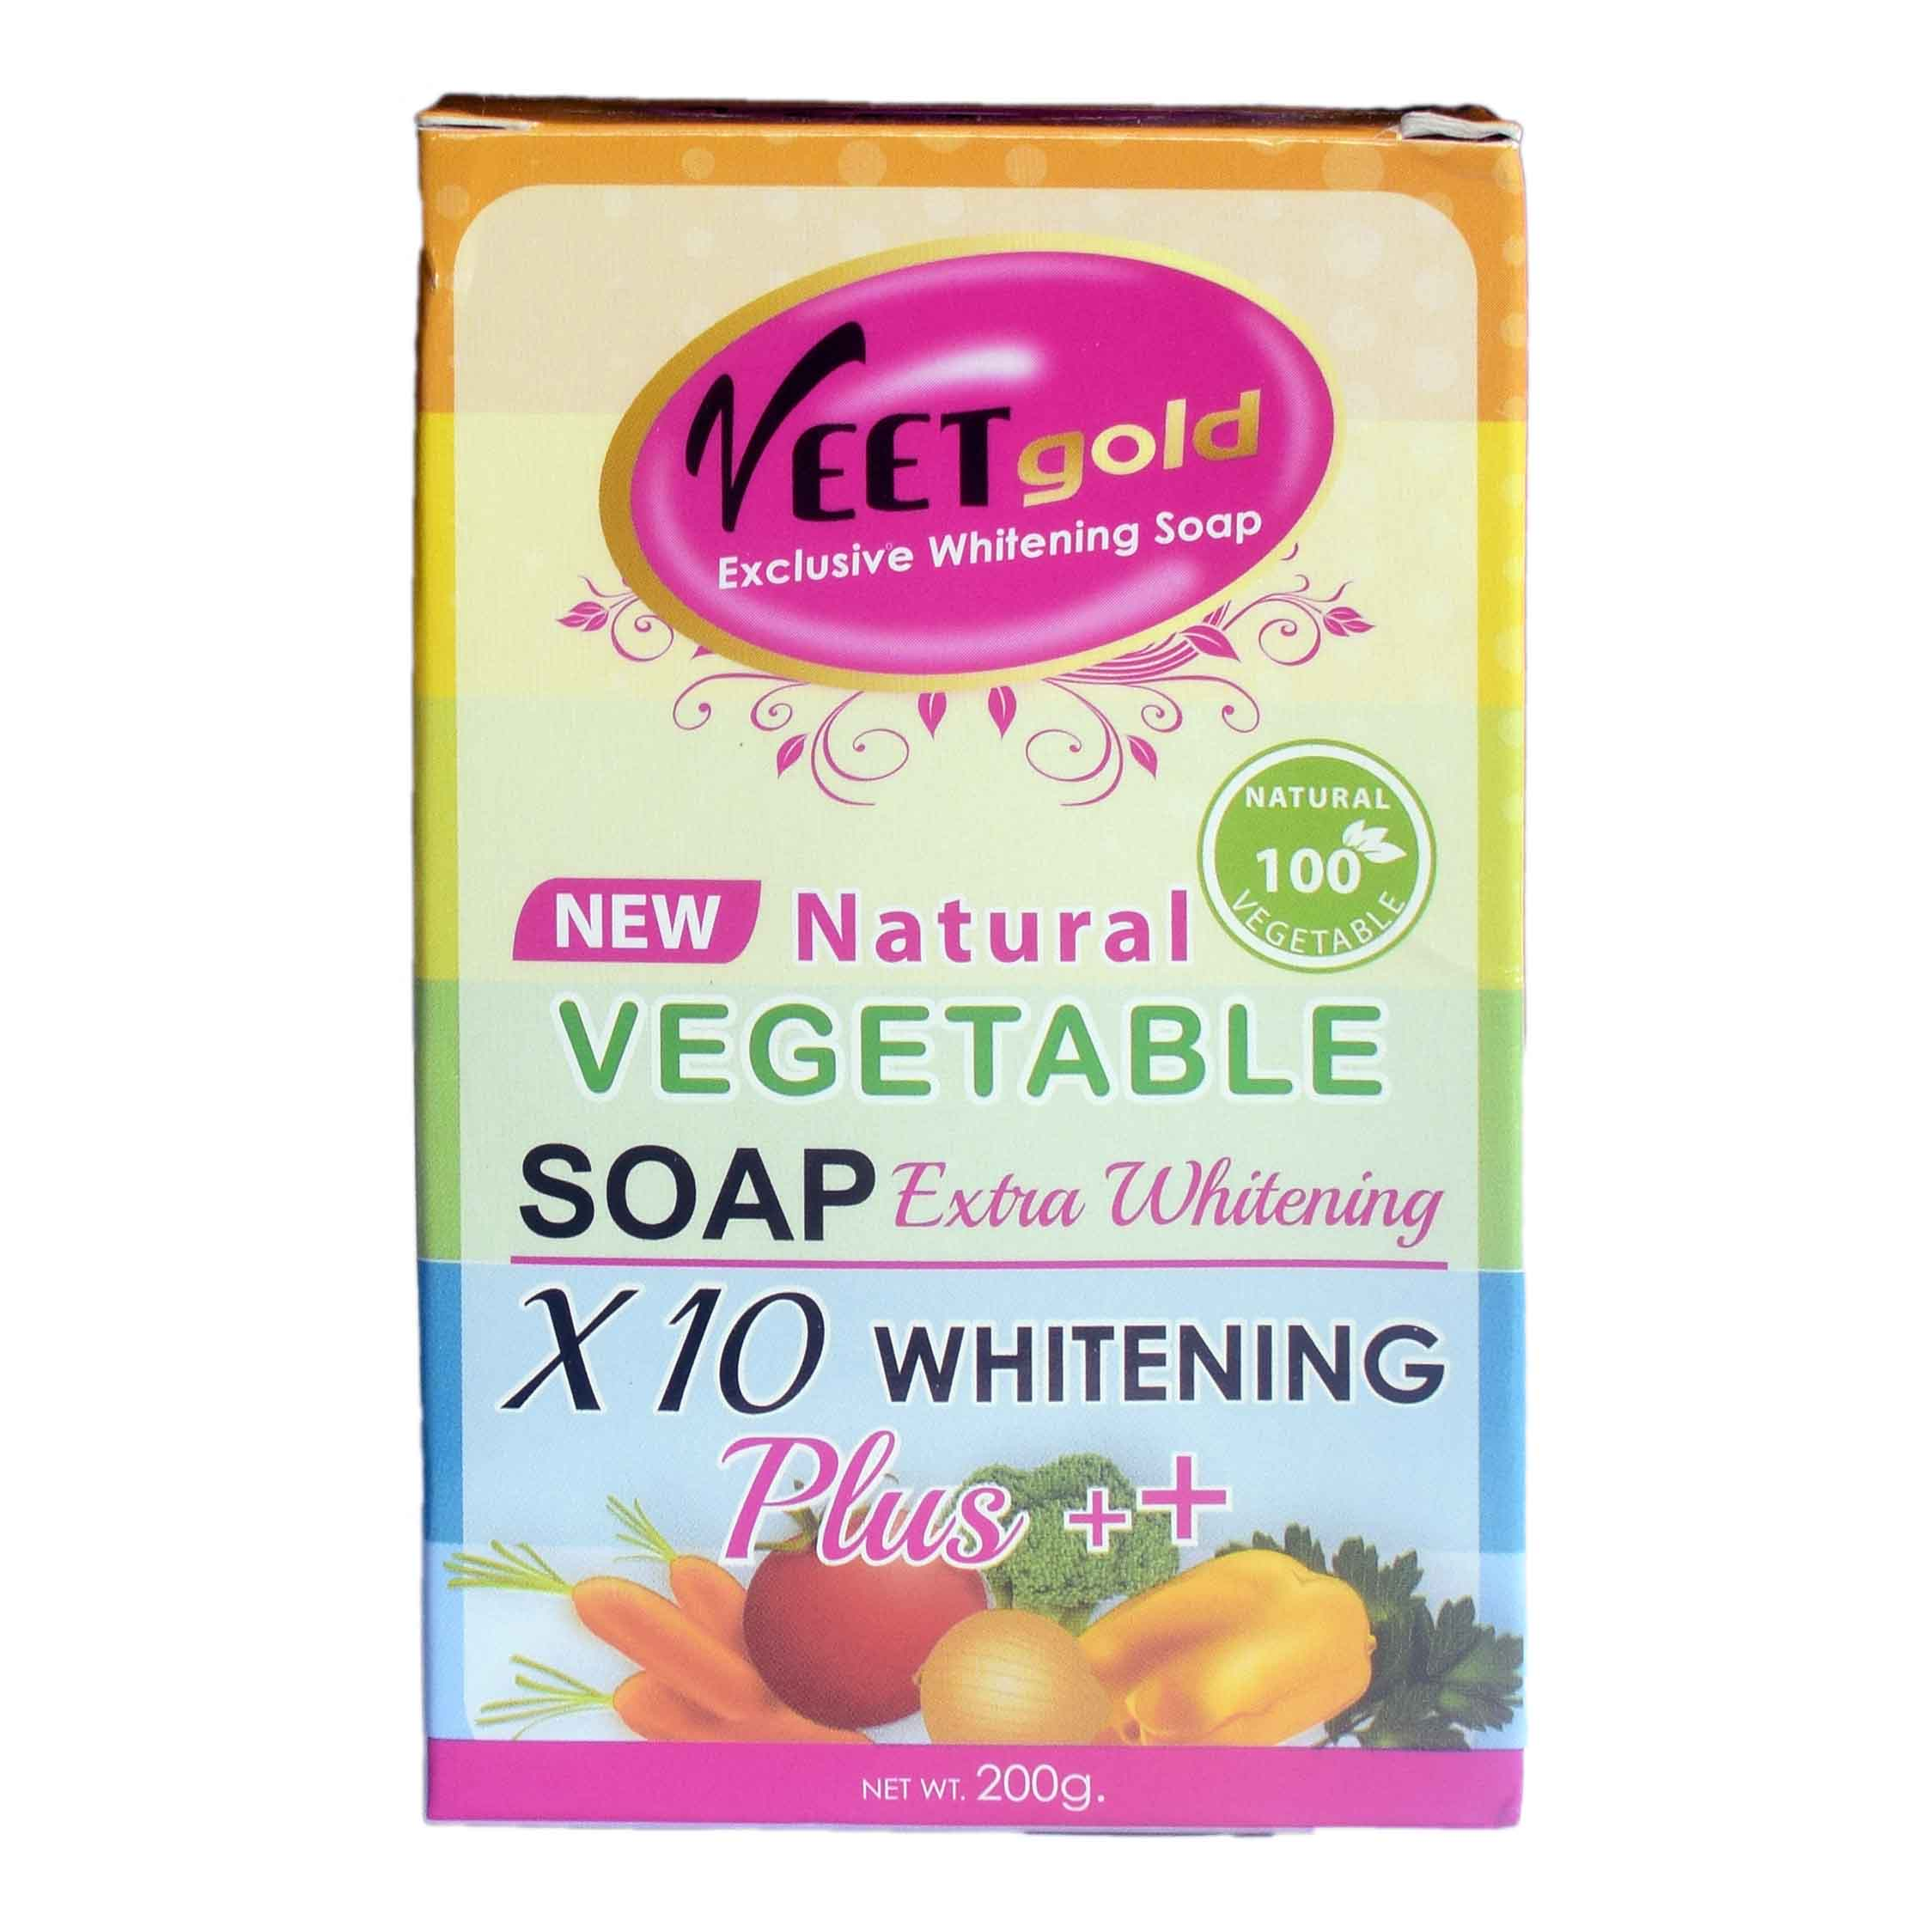 Veetgold Natural vegetable Extra Whitening Soap